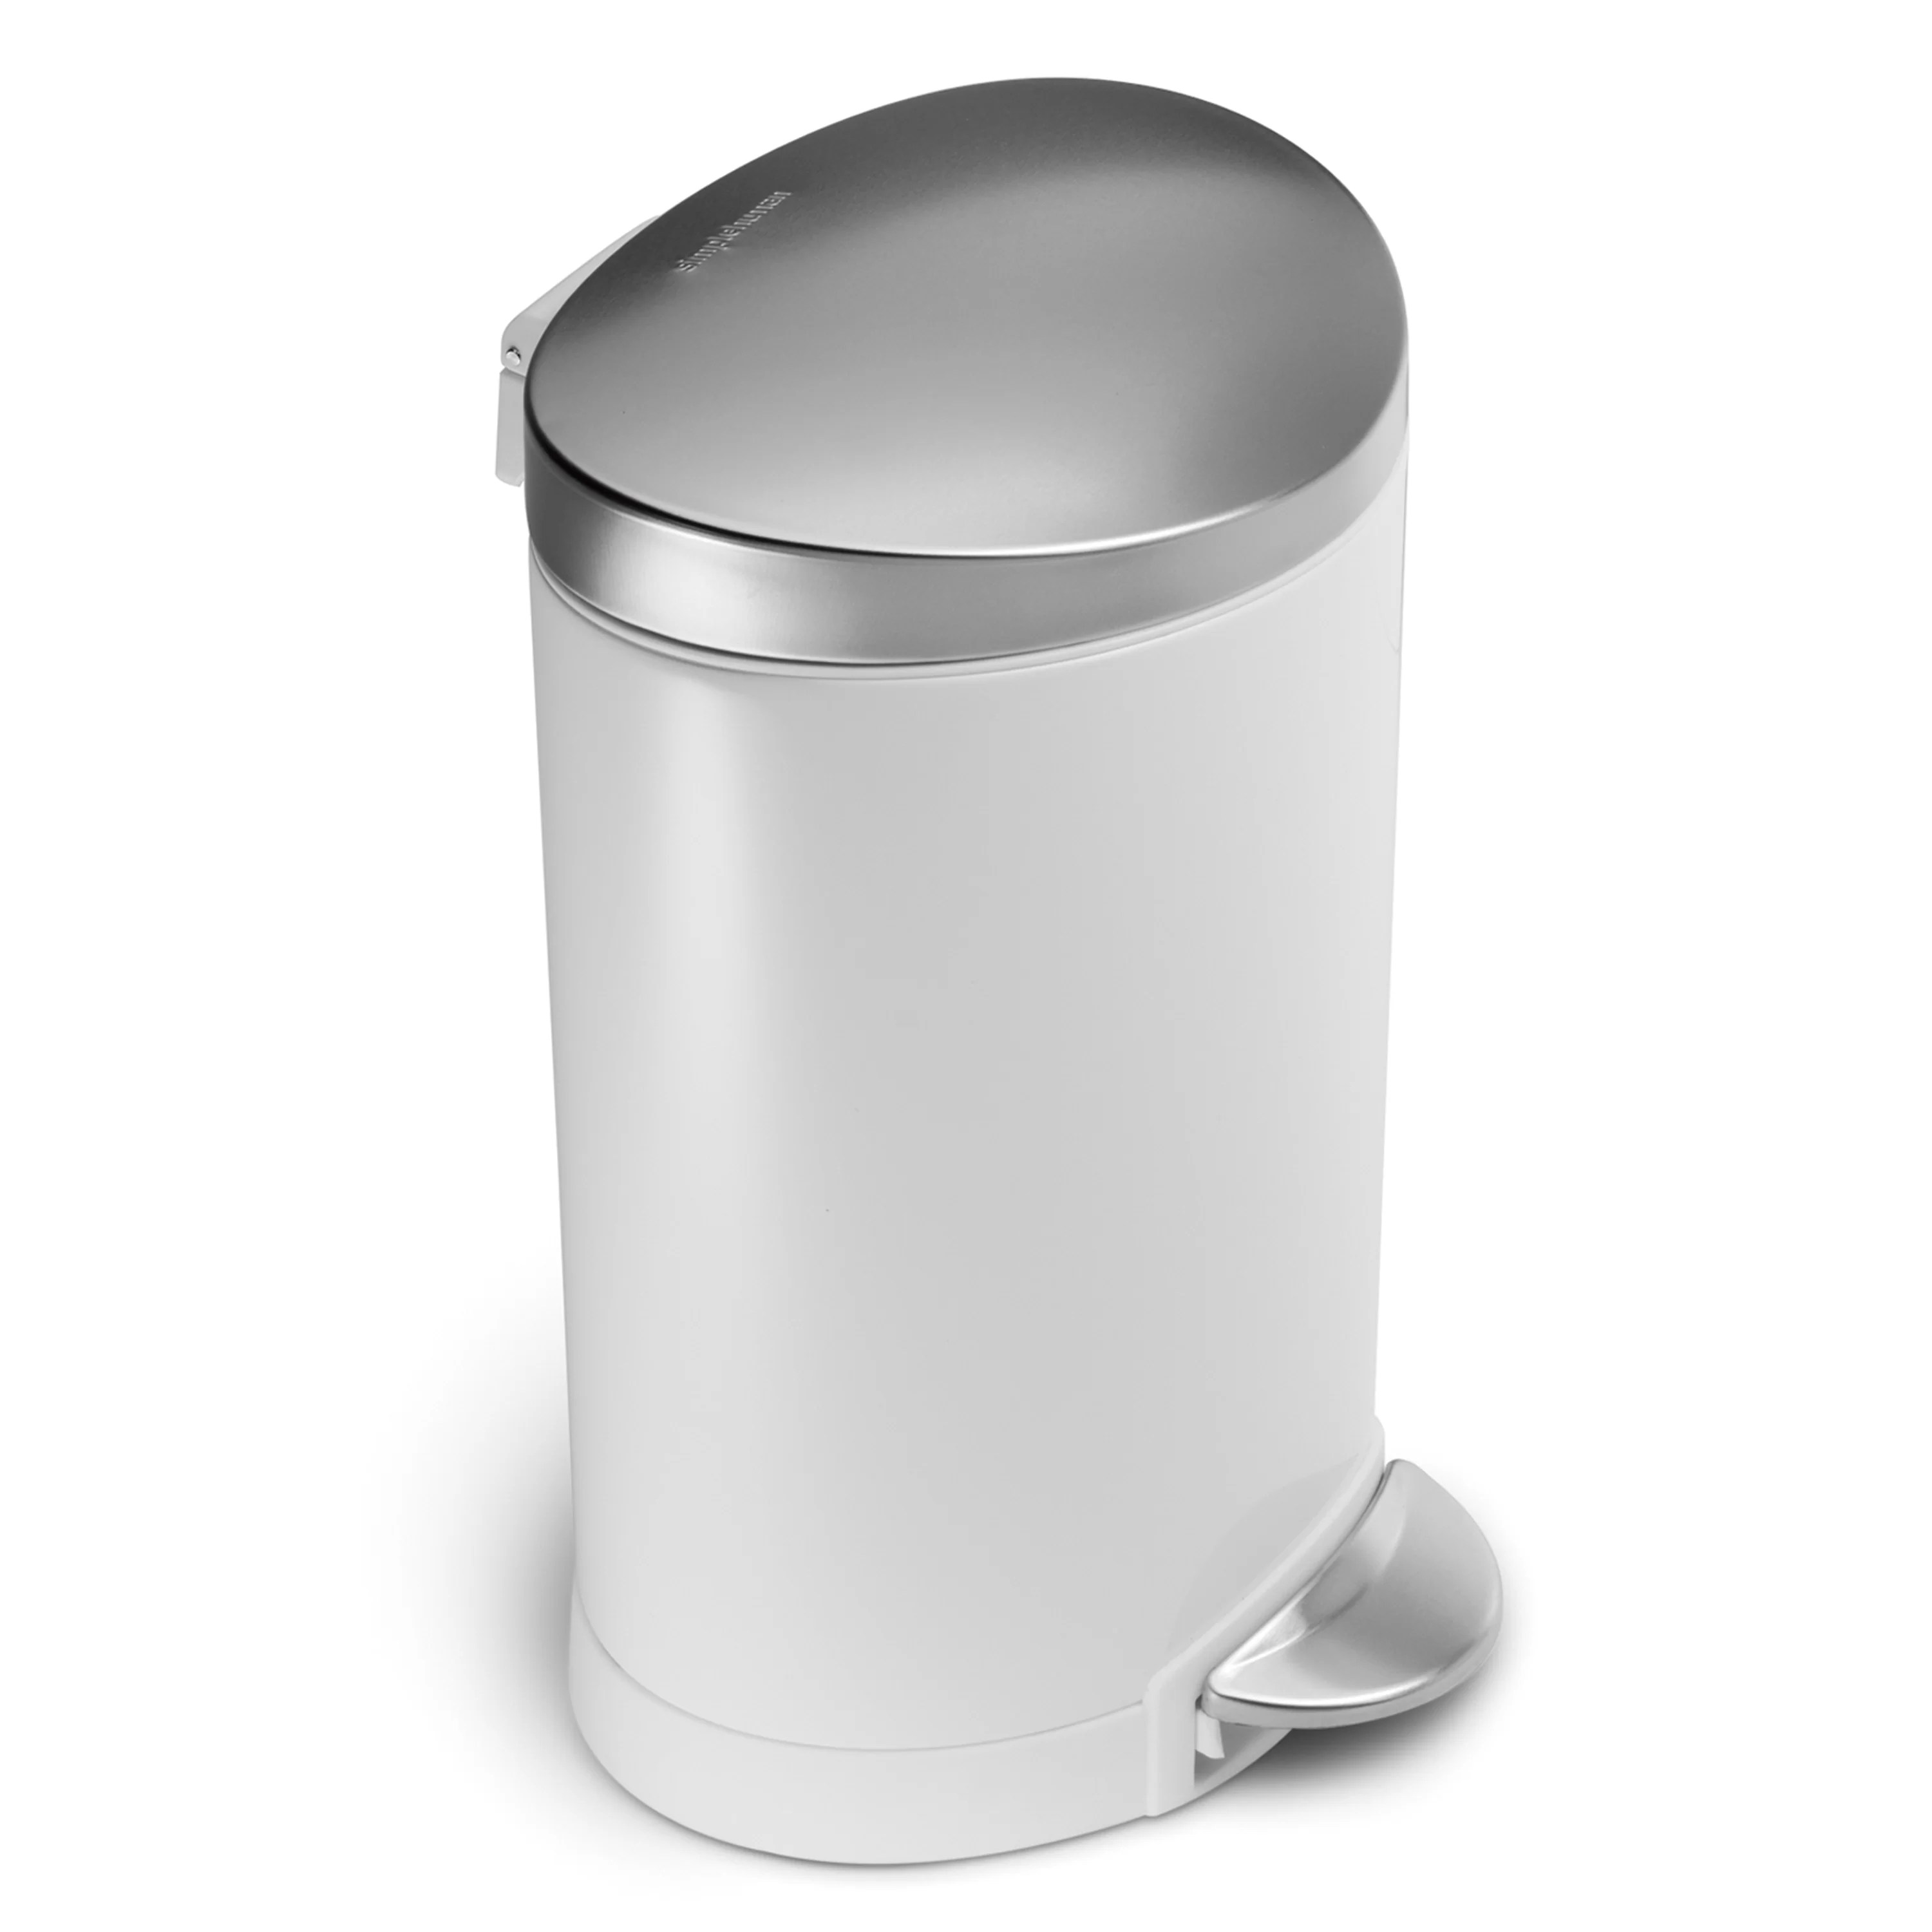 Mini Plastic Trash Can With Lid Simplehuman 1 6 Gallon Semi Round Step Trash Can White Steel With